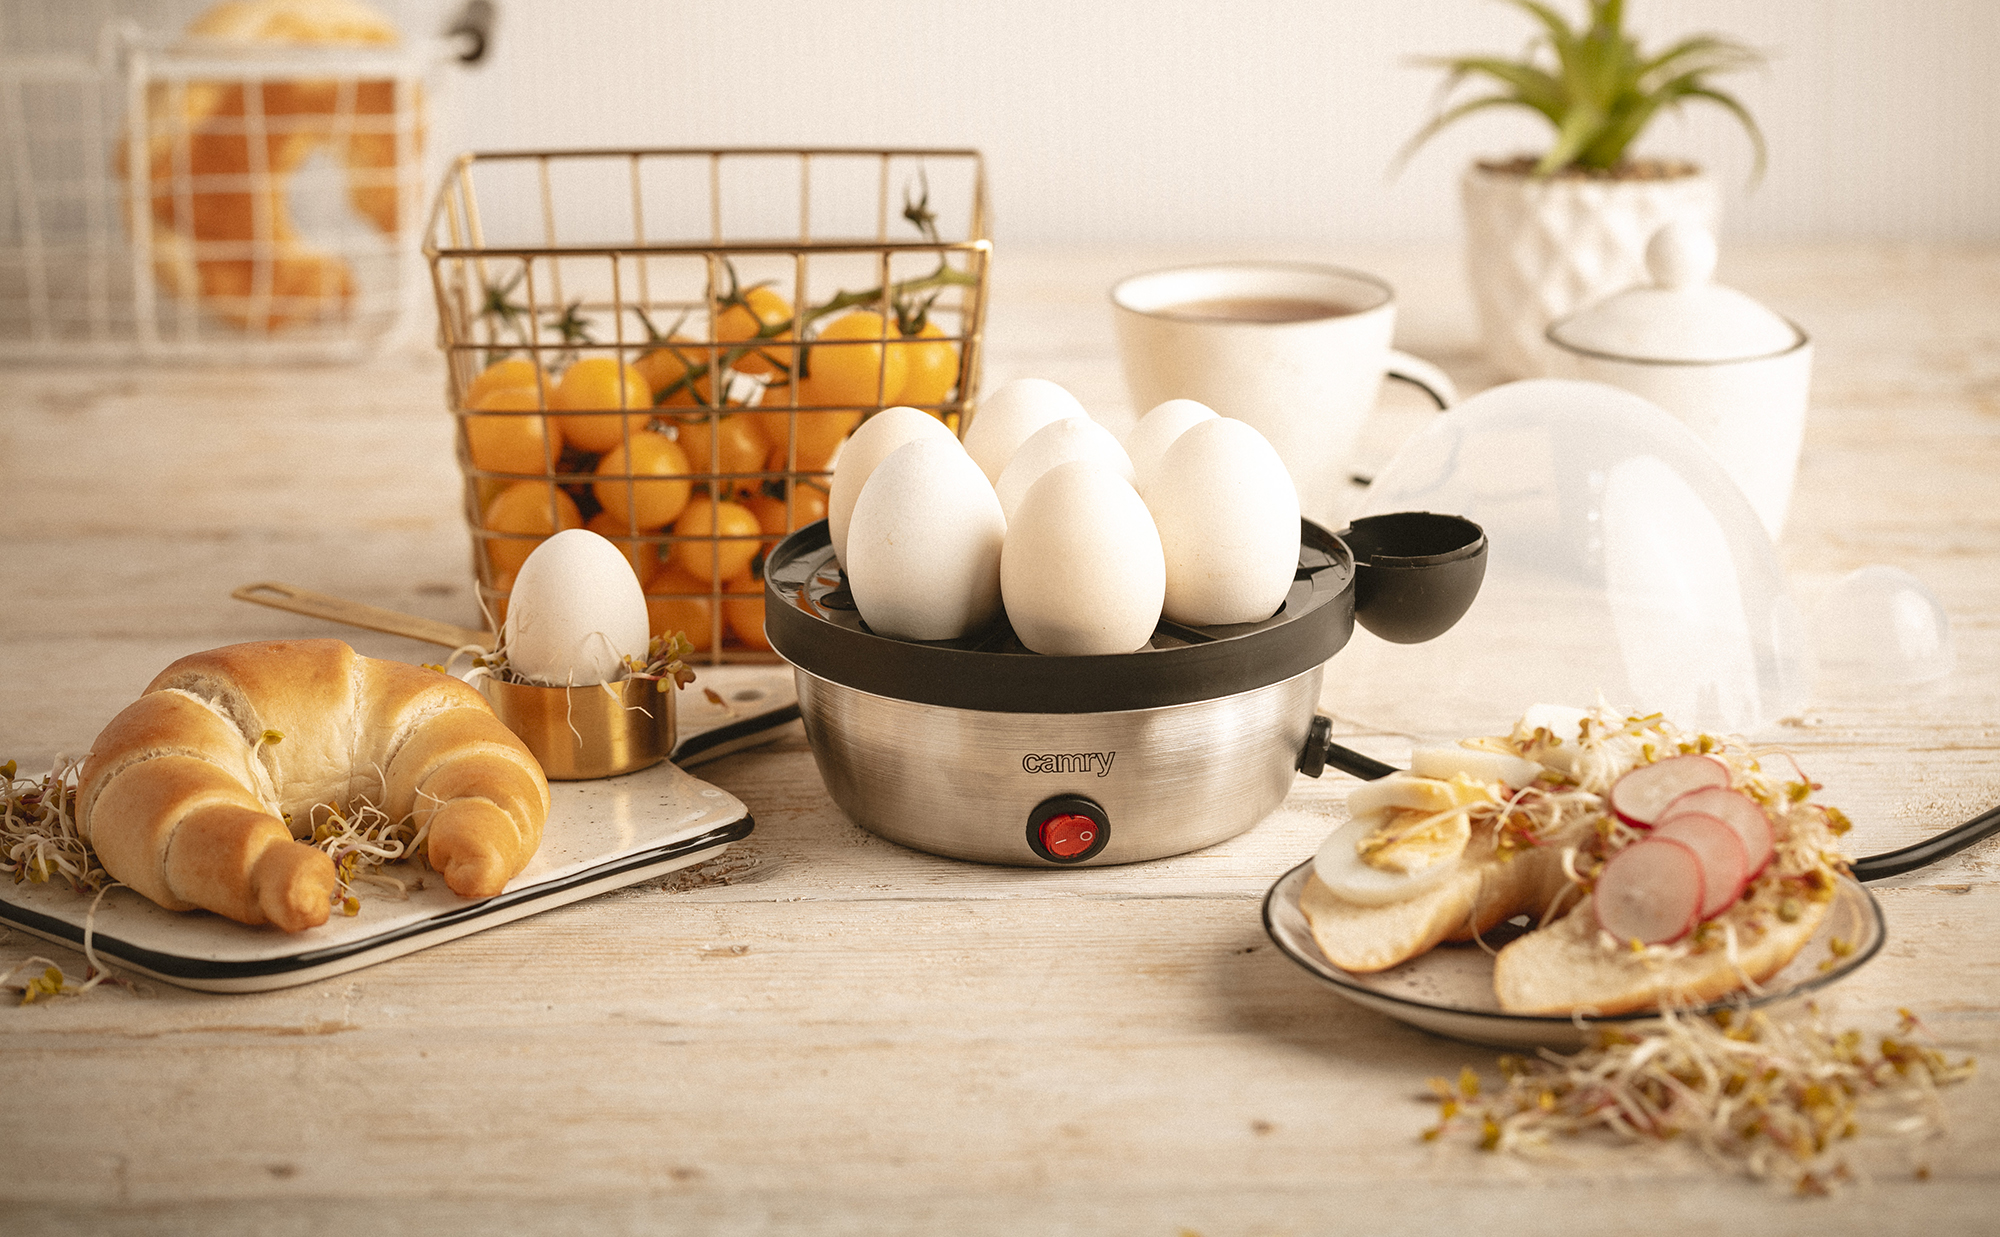 CAMRY CR-4482 Electric Egg Cooker for 7 Eggs, Stainless Steel, Cooking Adjustment, Overheating Protection, 450W, BPA free